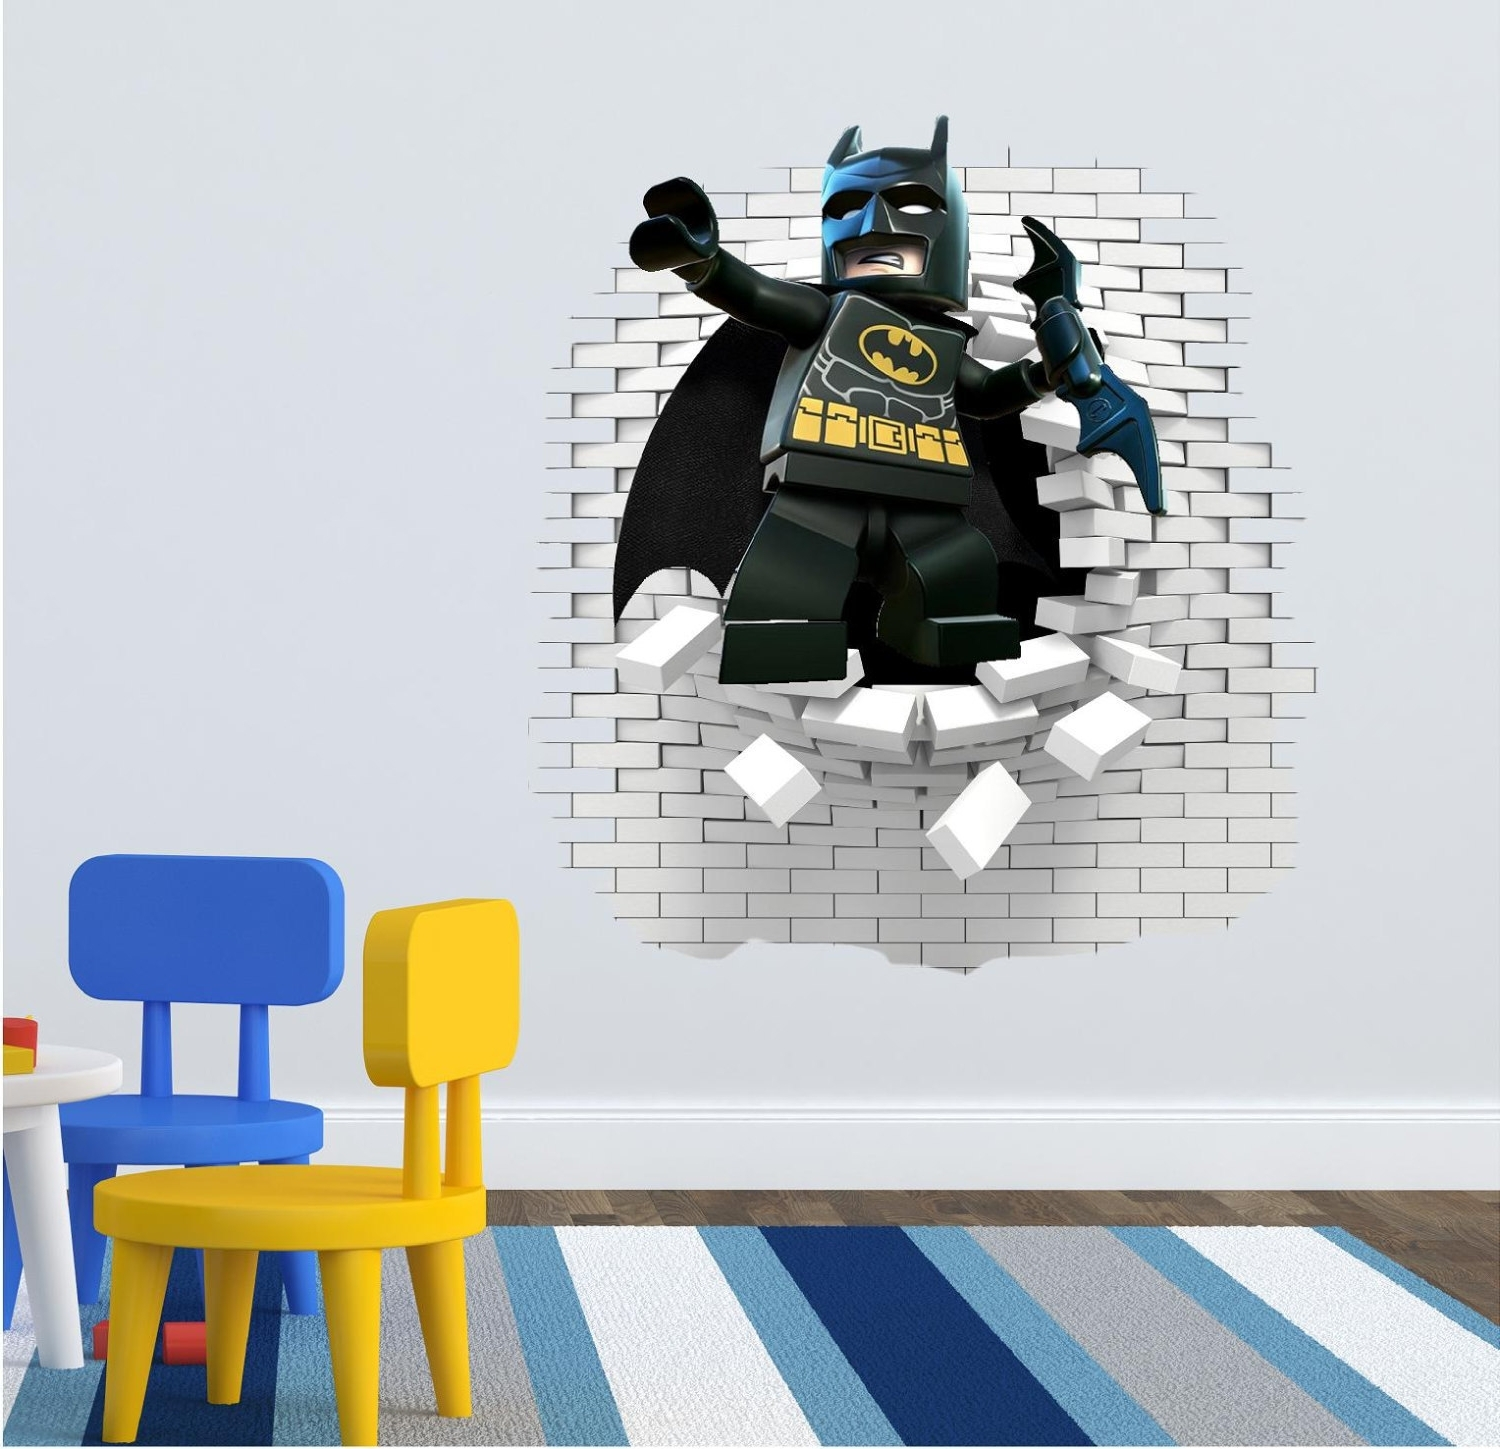 3D Lego Batman Wall Decal Great For The Kids Room.artogtext On With Regard To Latest Space 3D Vinyl Wall Art (Gallery 11 of 15)